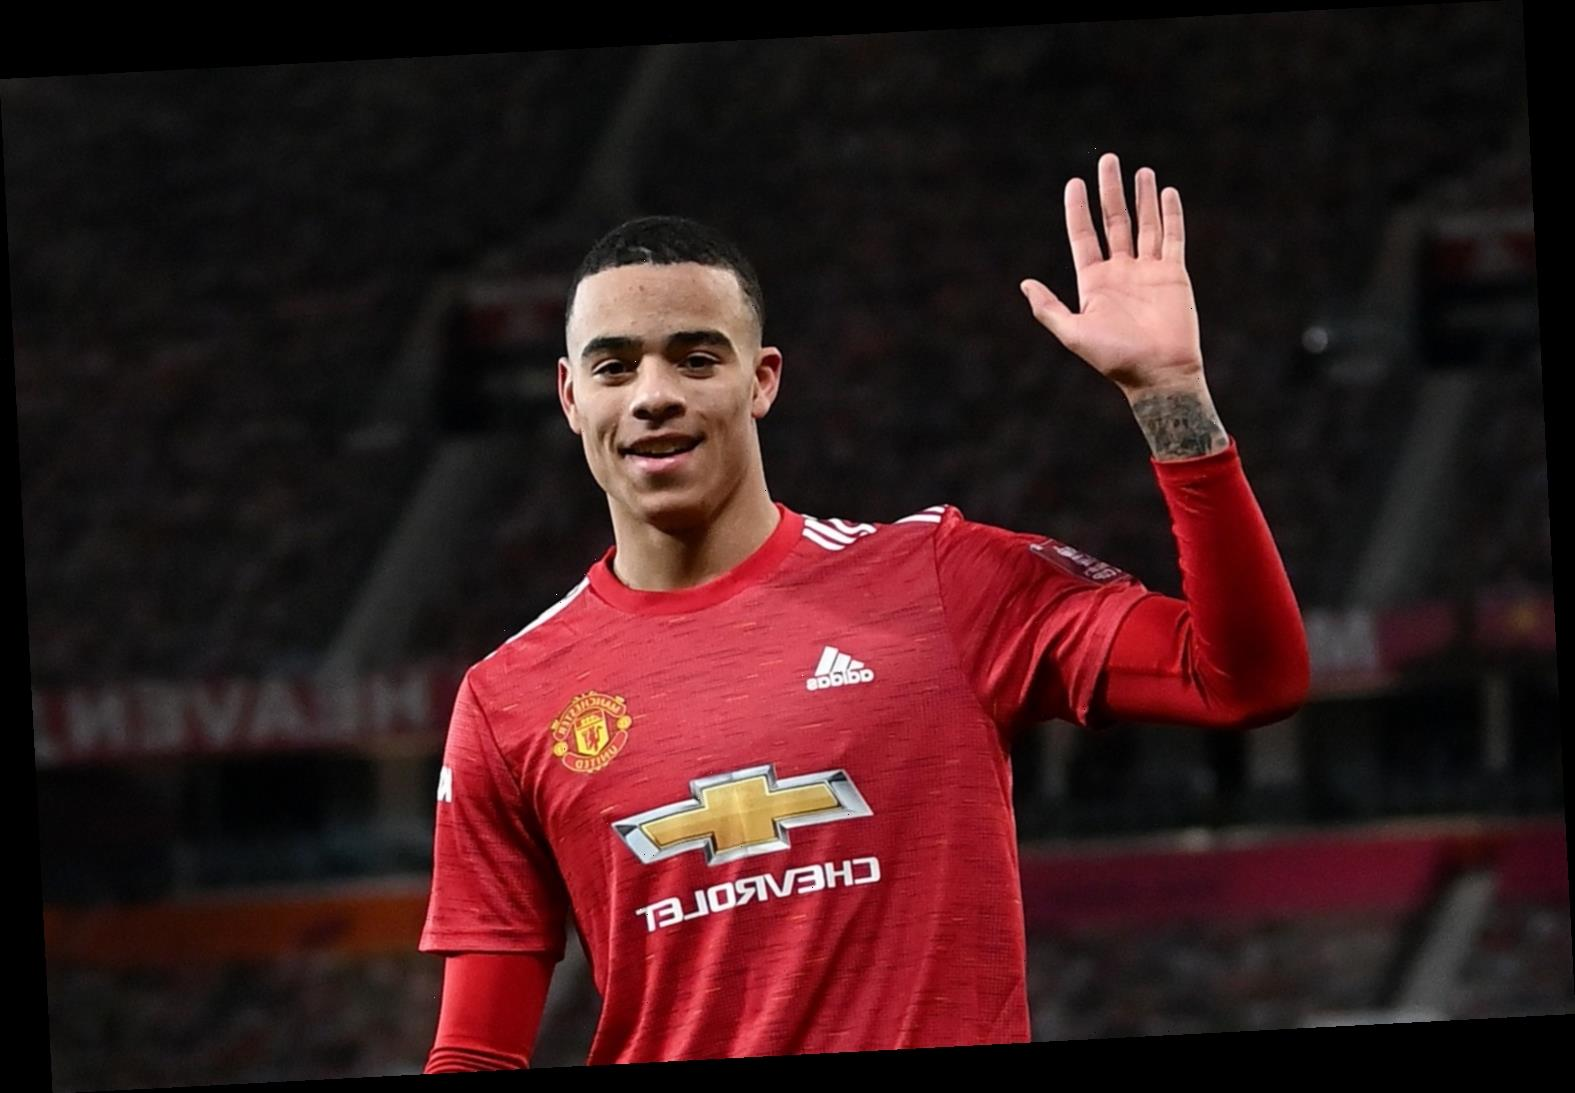 Mason Greenwood has 'matured' for Man Utd since England squad boot and concerns over 19-year-old's attitude